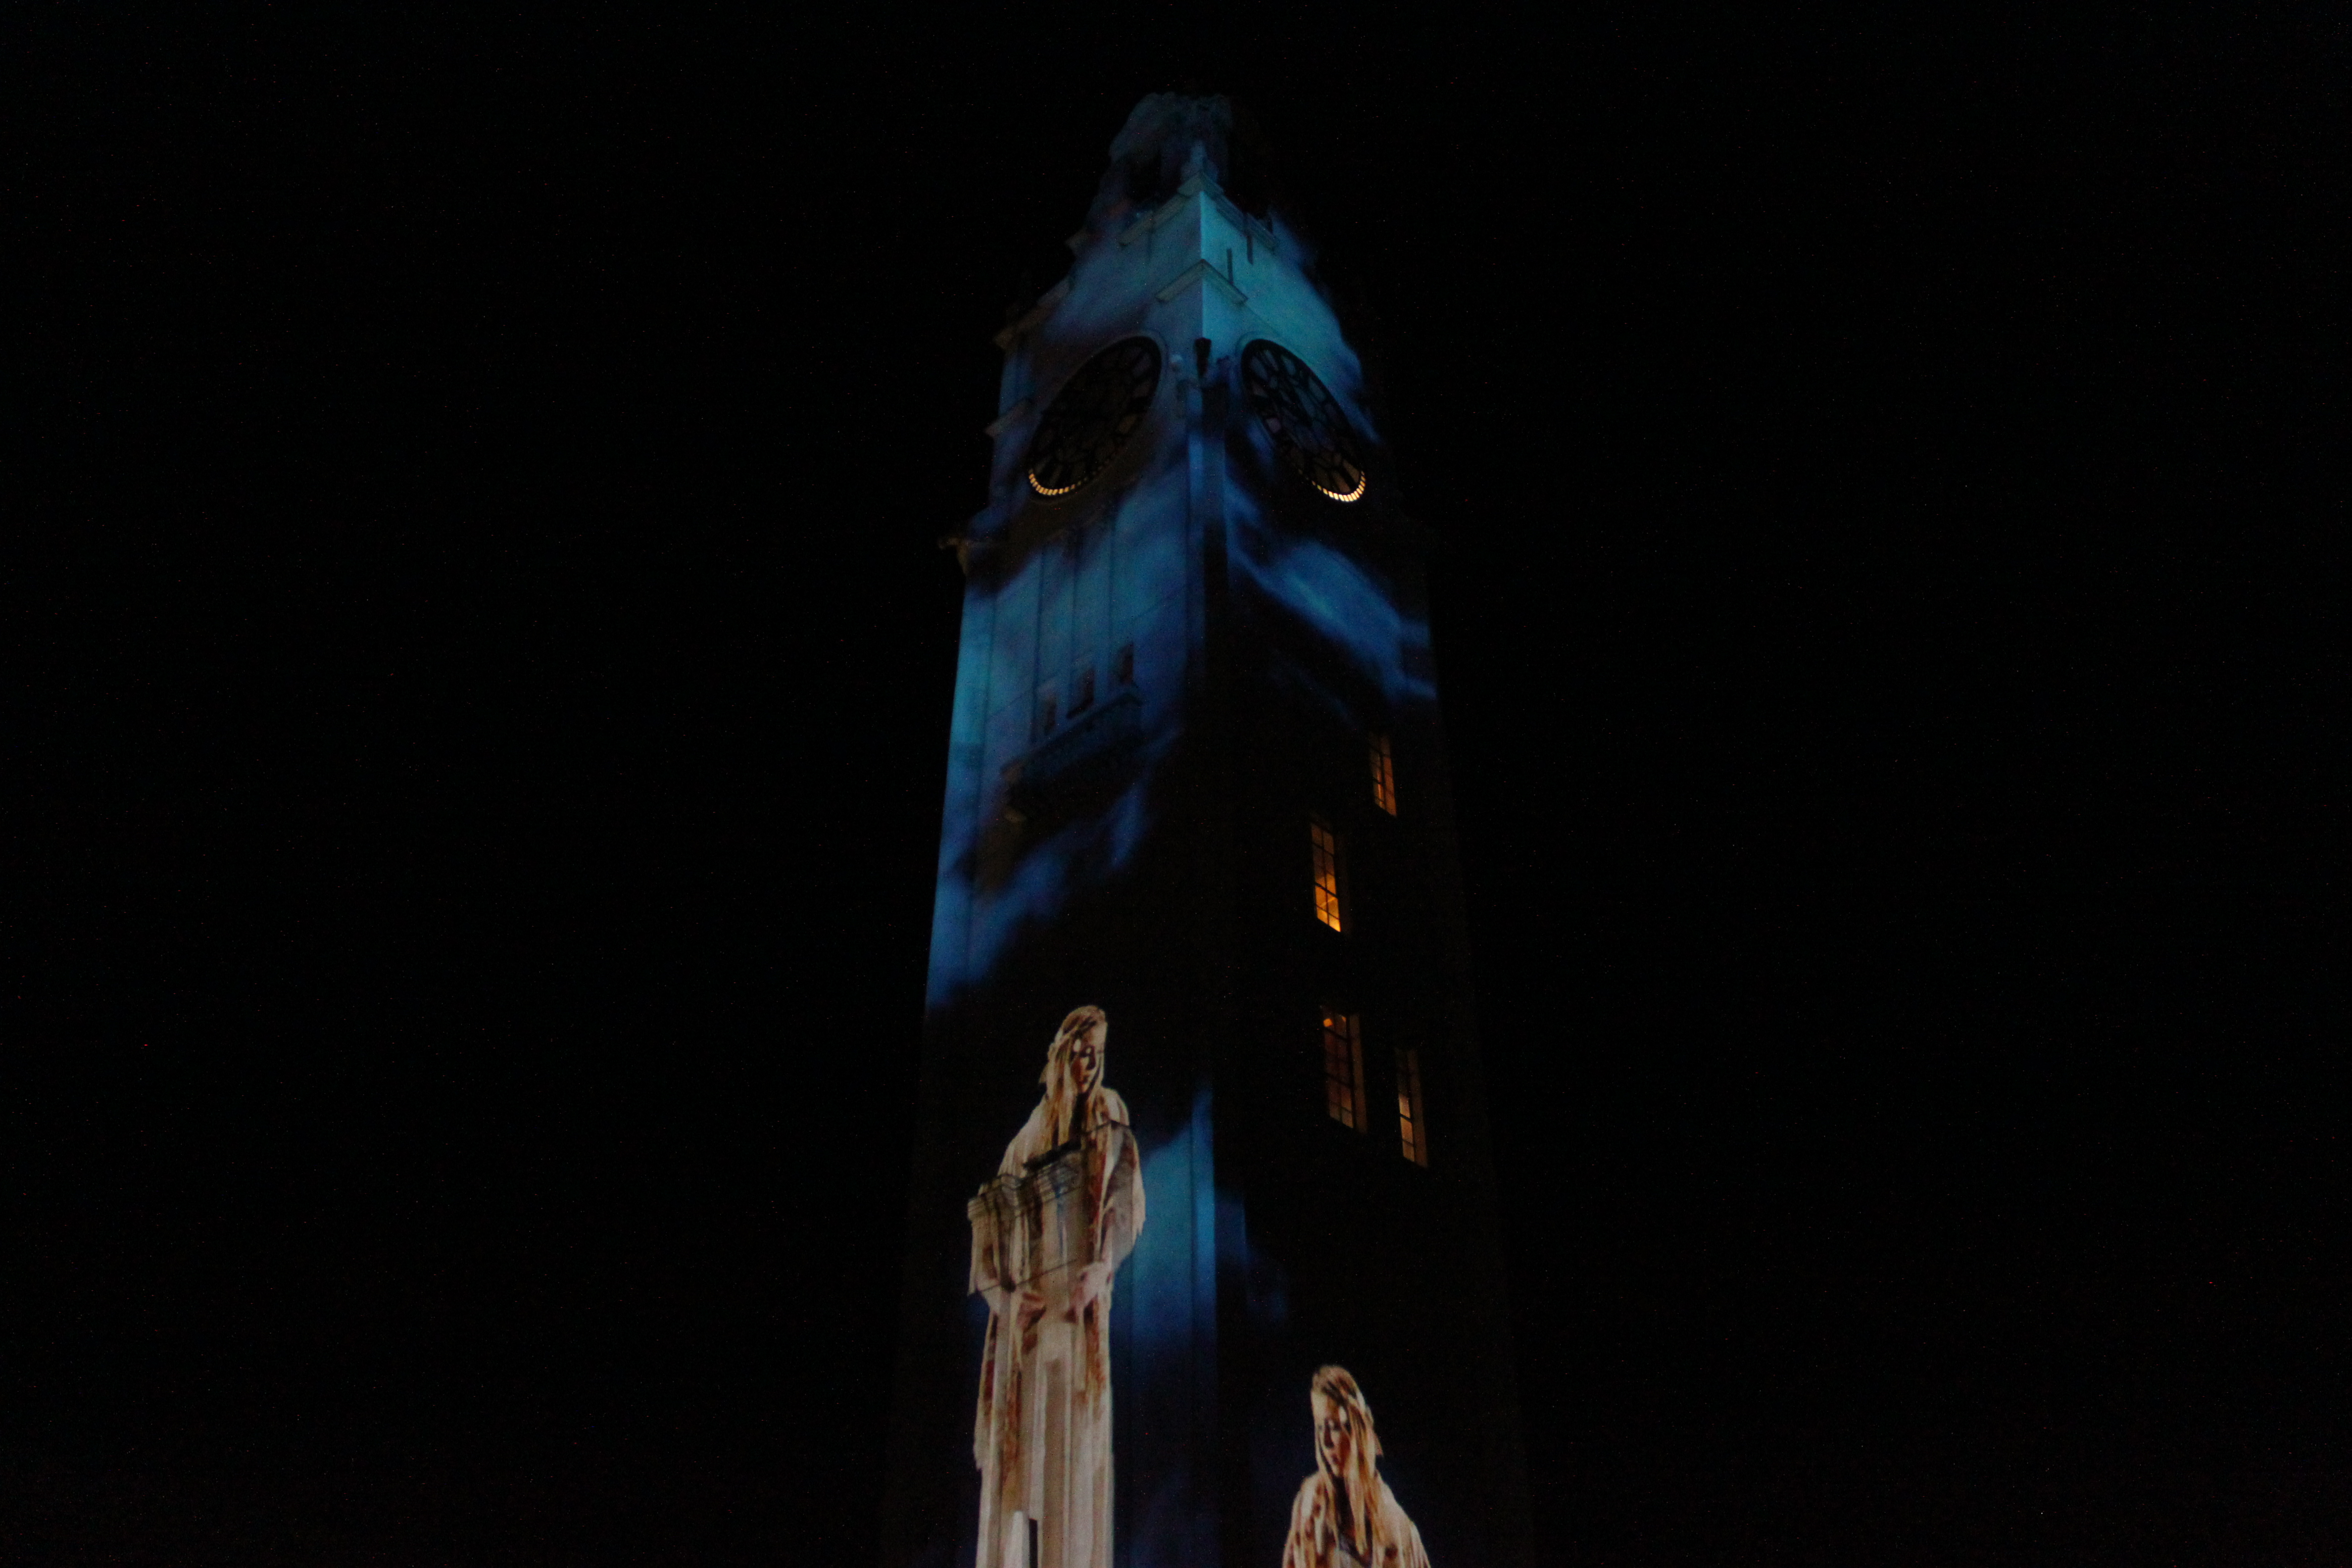 """Suzanne"" projected on the clock tower at Montreal's old port."